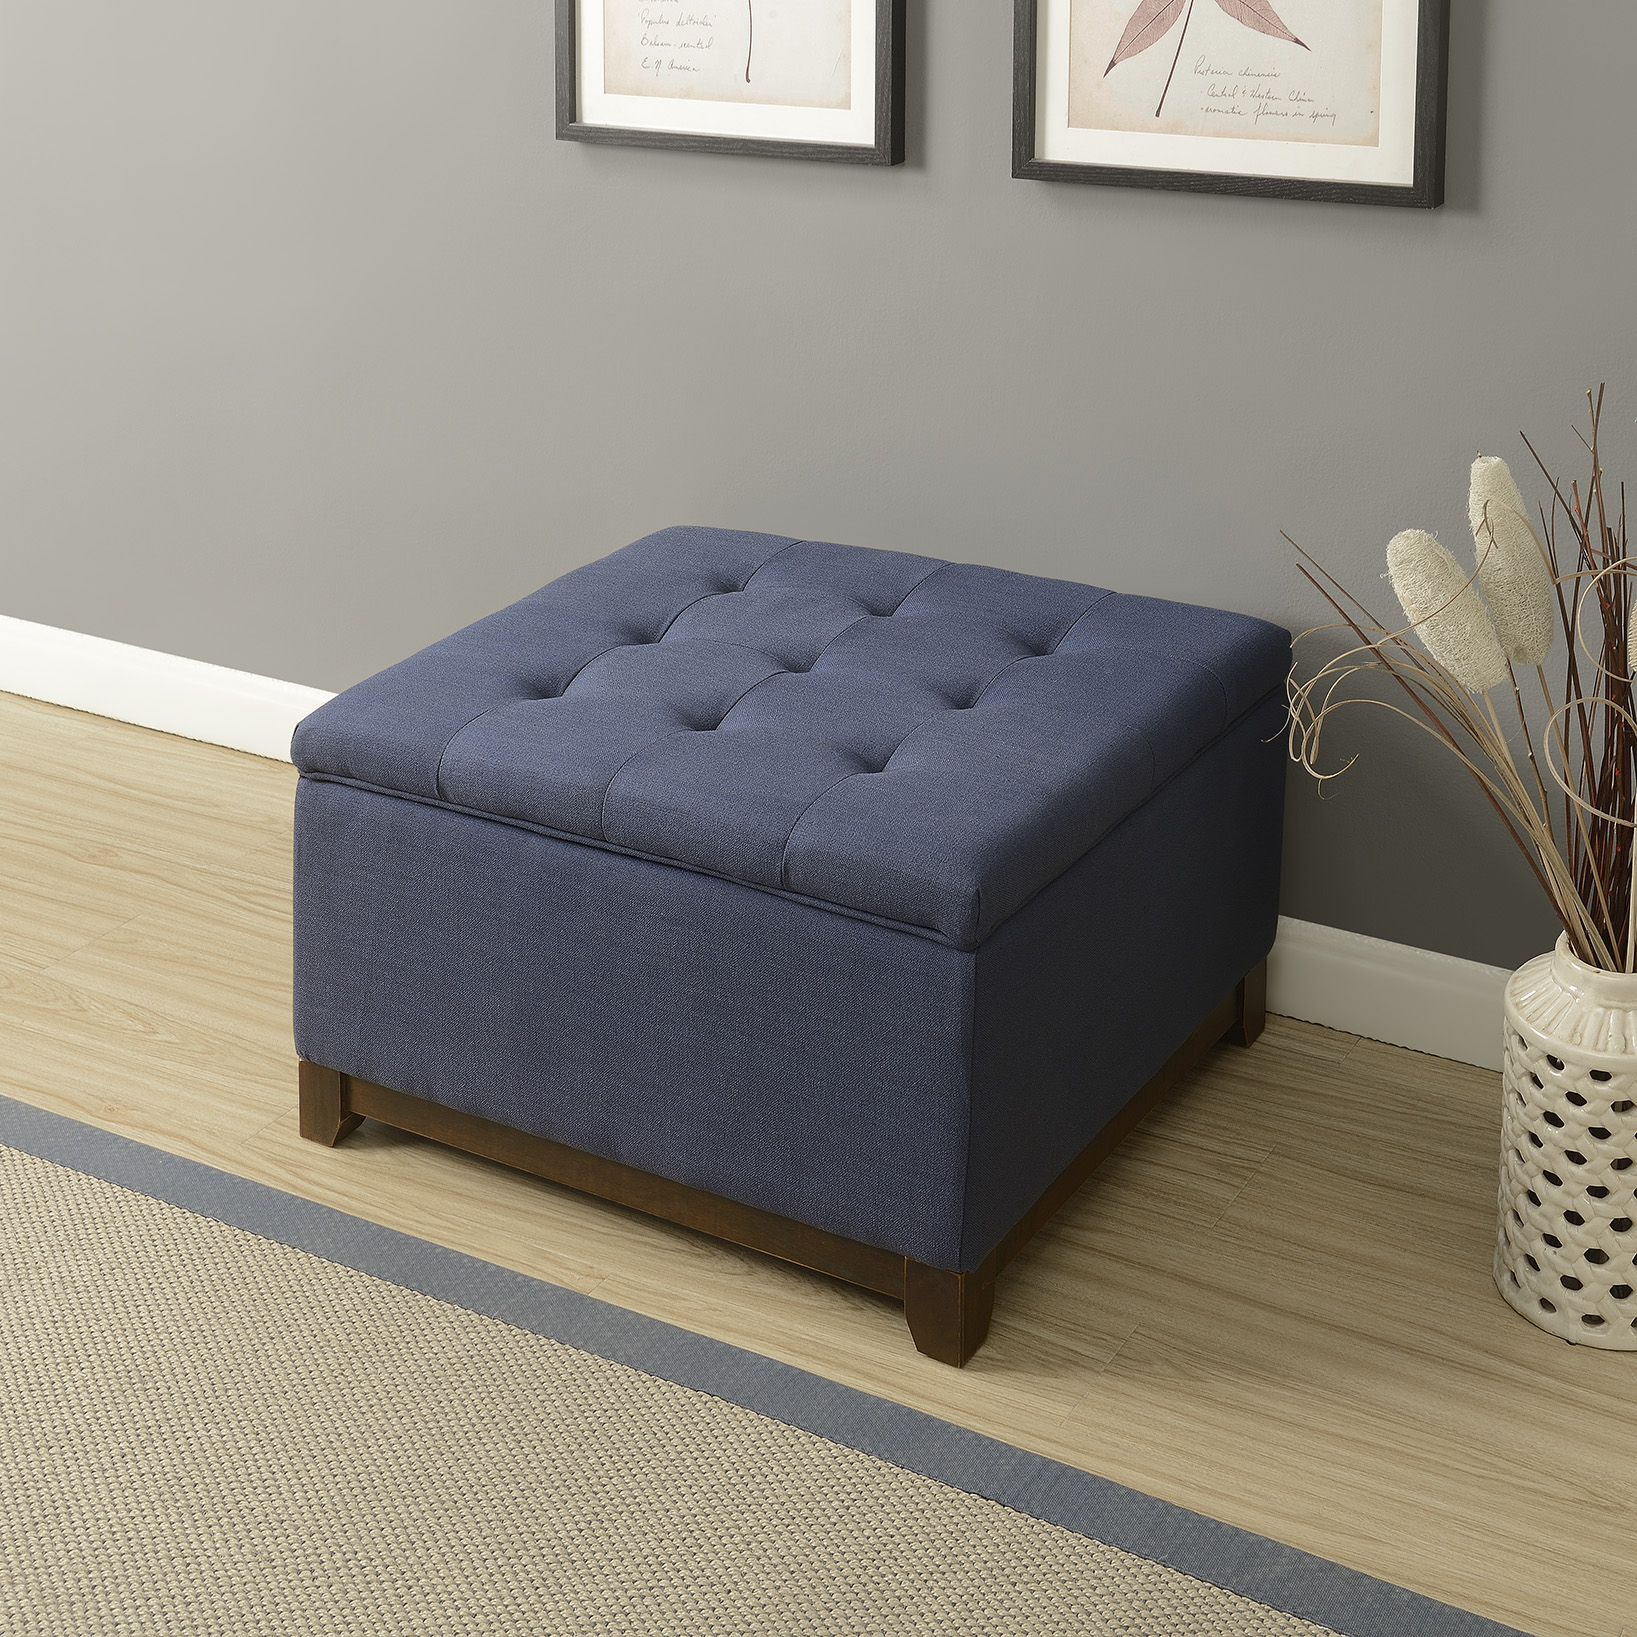 thumbnail 4 - Large Storage Ottoman Stool Bench Seat Linen Tufted, (Brown, Gray and Navy)